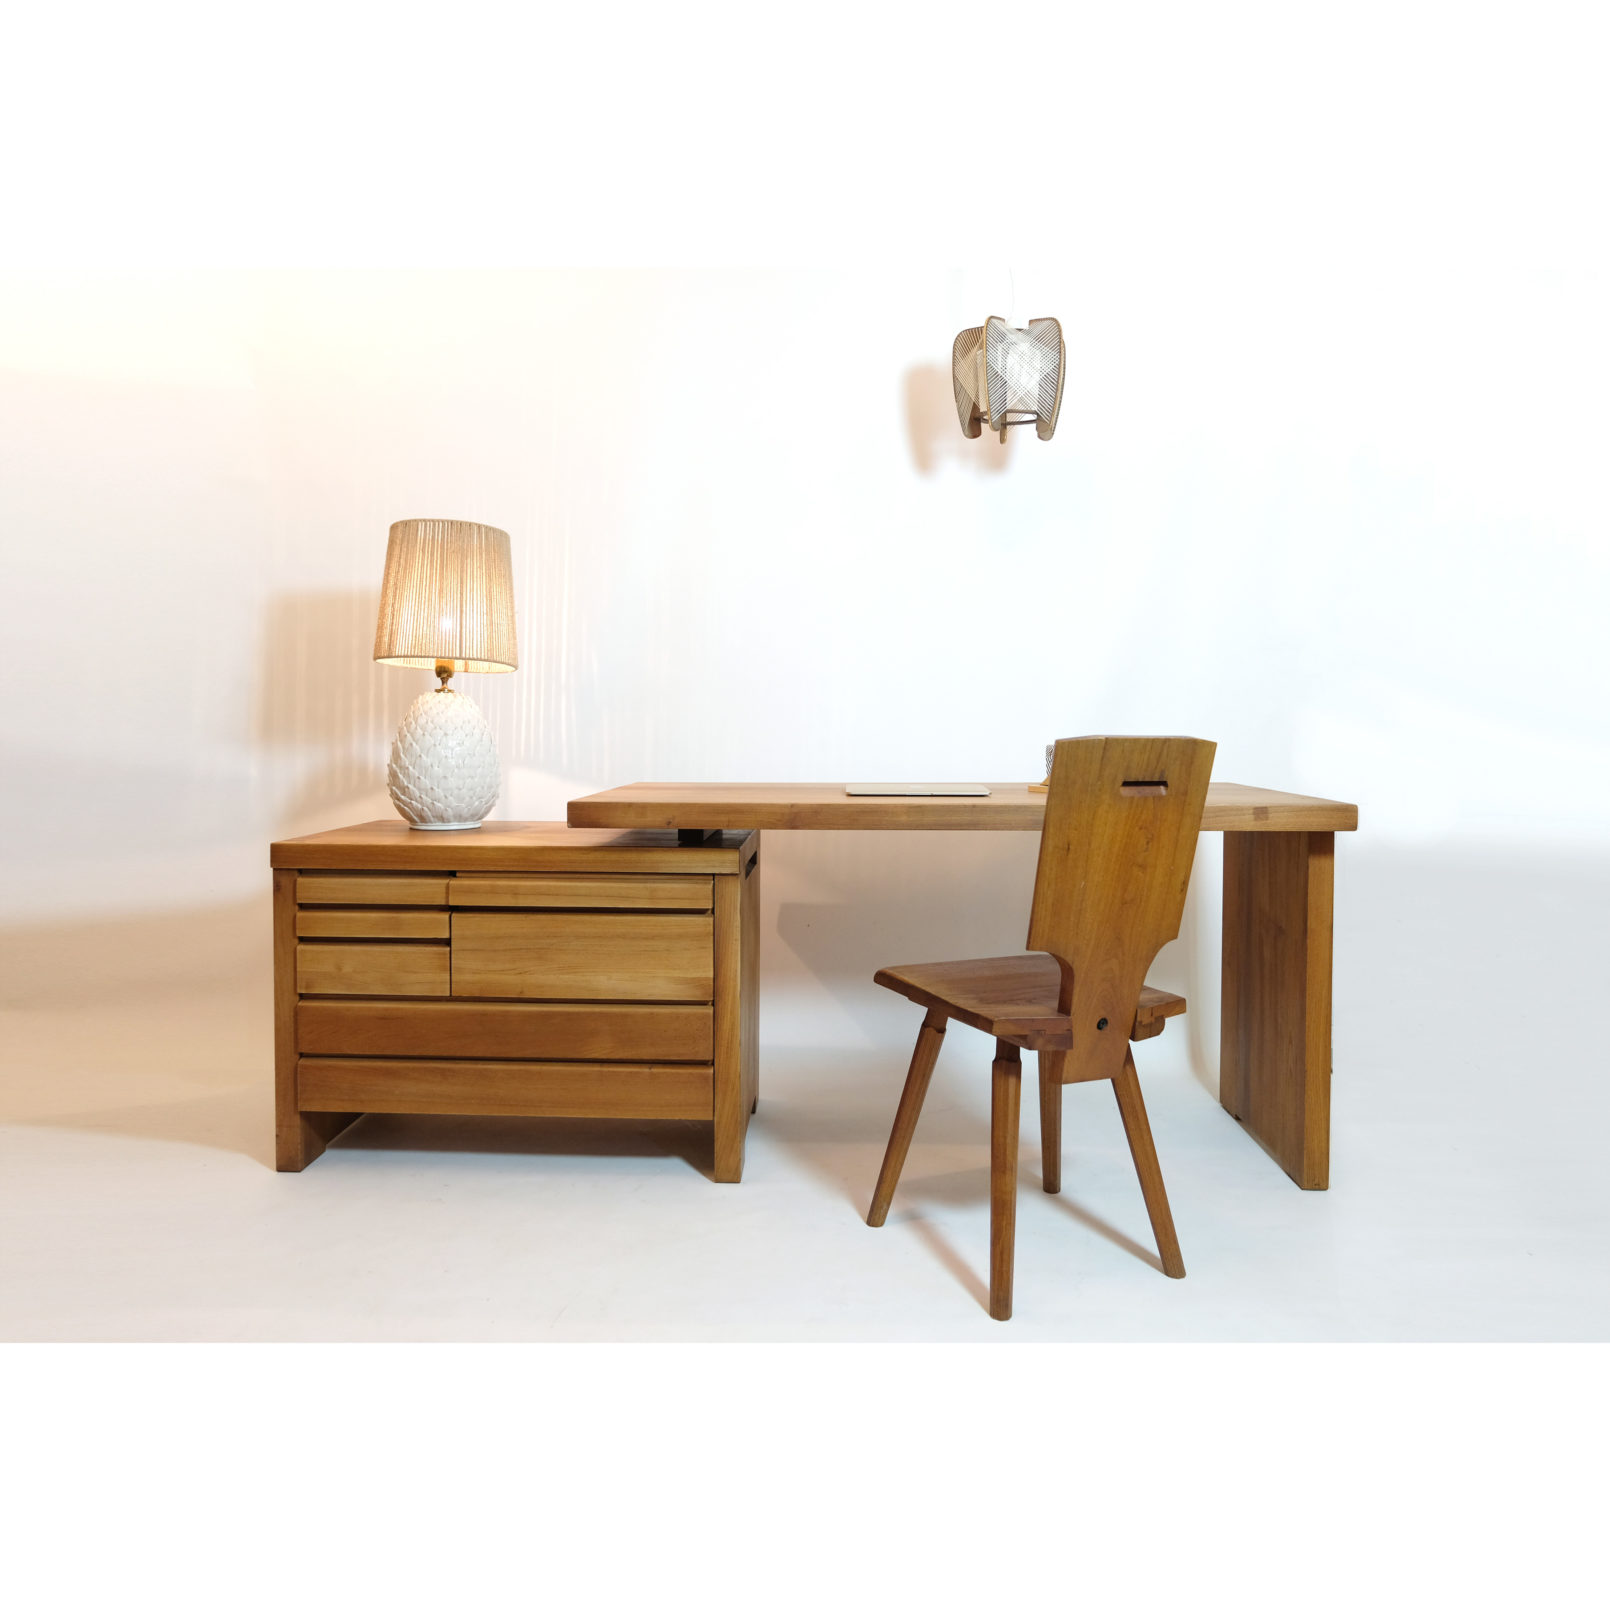 Pierre Chapo, B19 E desk in solid wood.